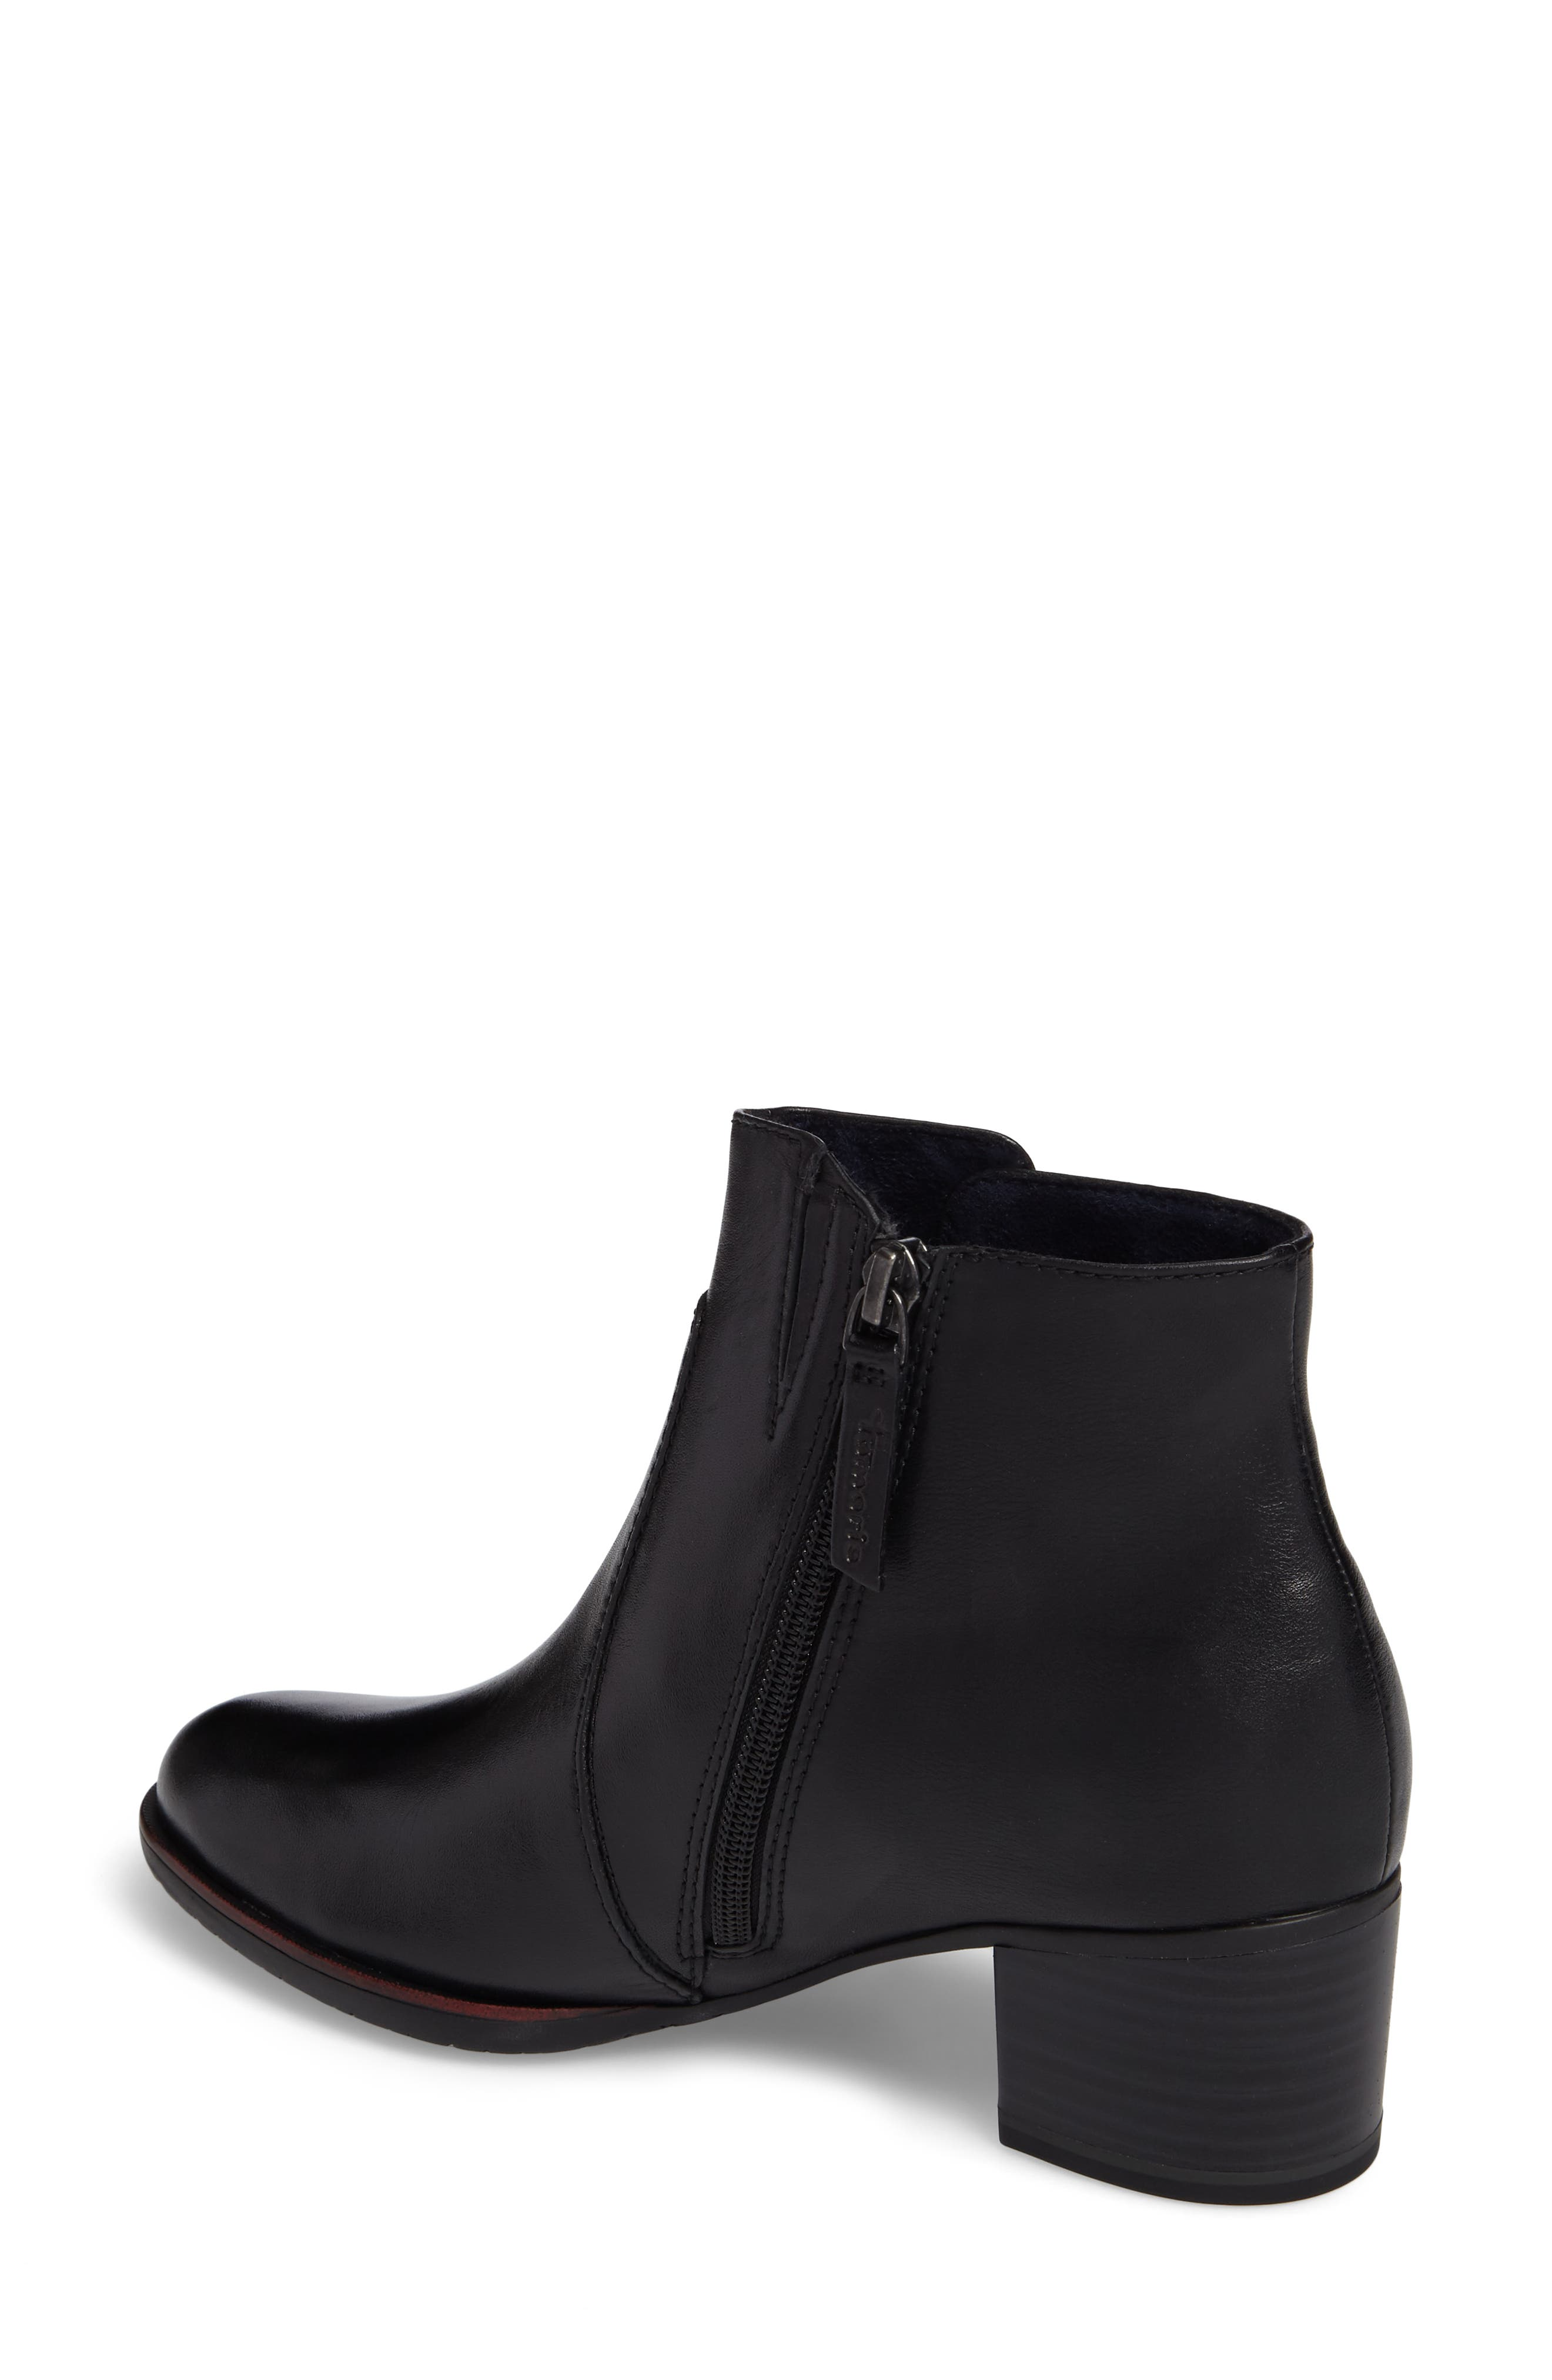 Akaria Mixed Finish Bootie,                             Alternate thumbnail 2, color,                             Black Leather